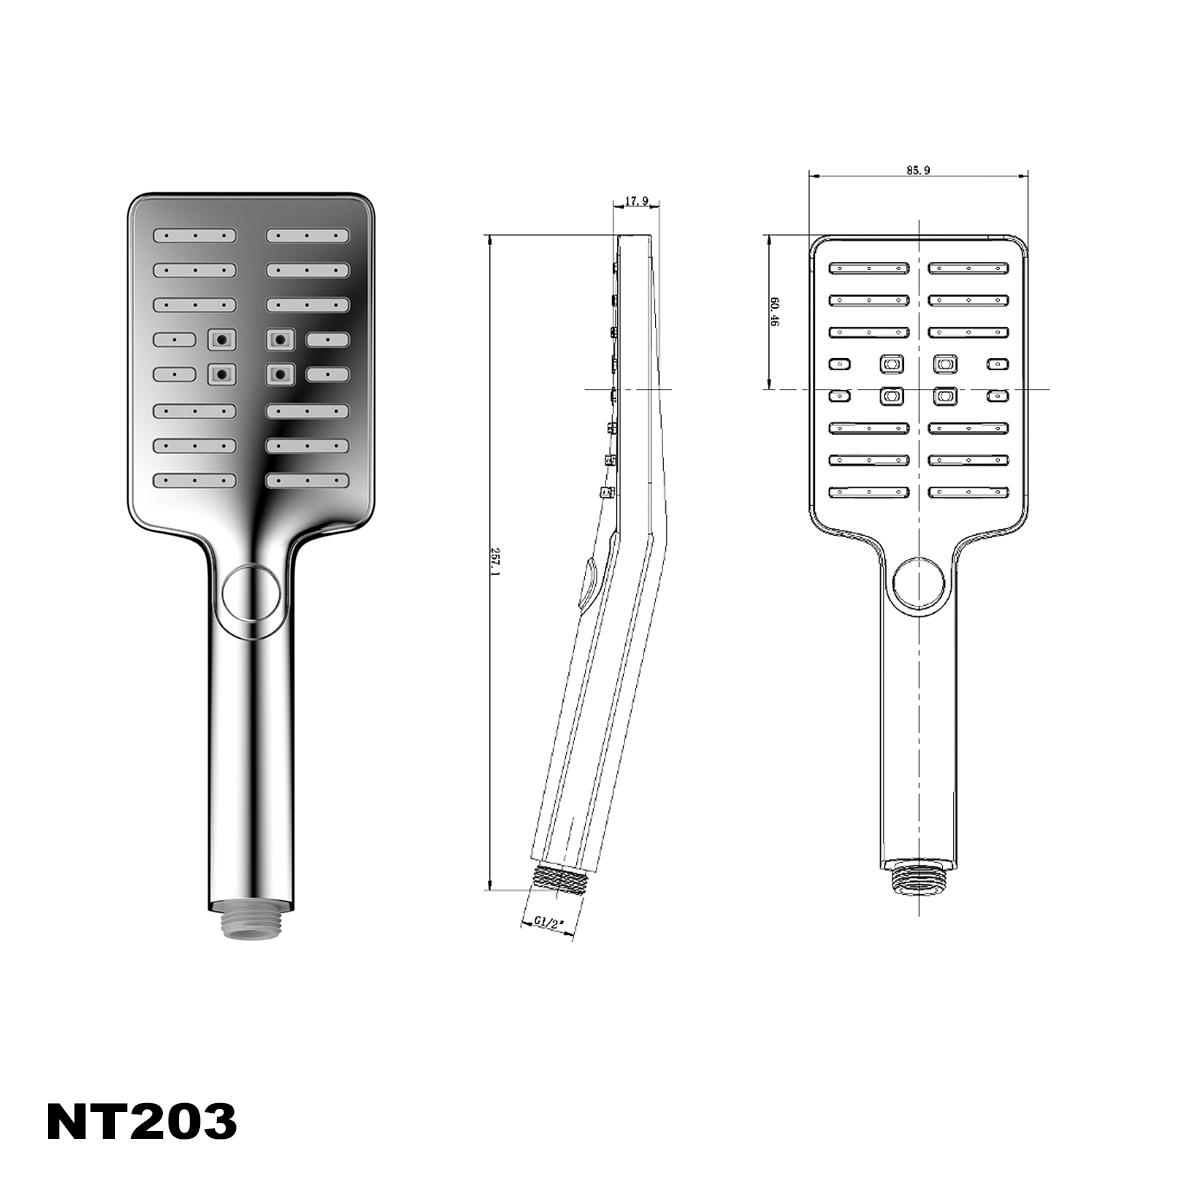 Handbrause NT203